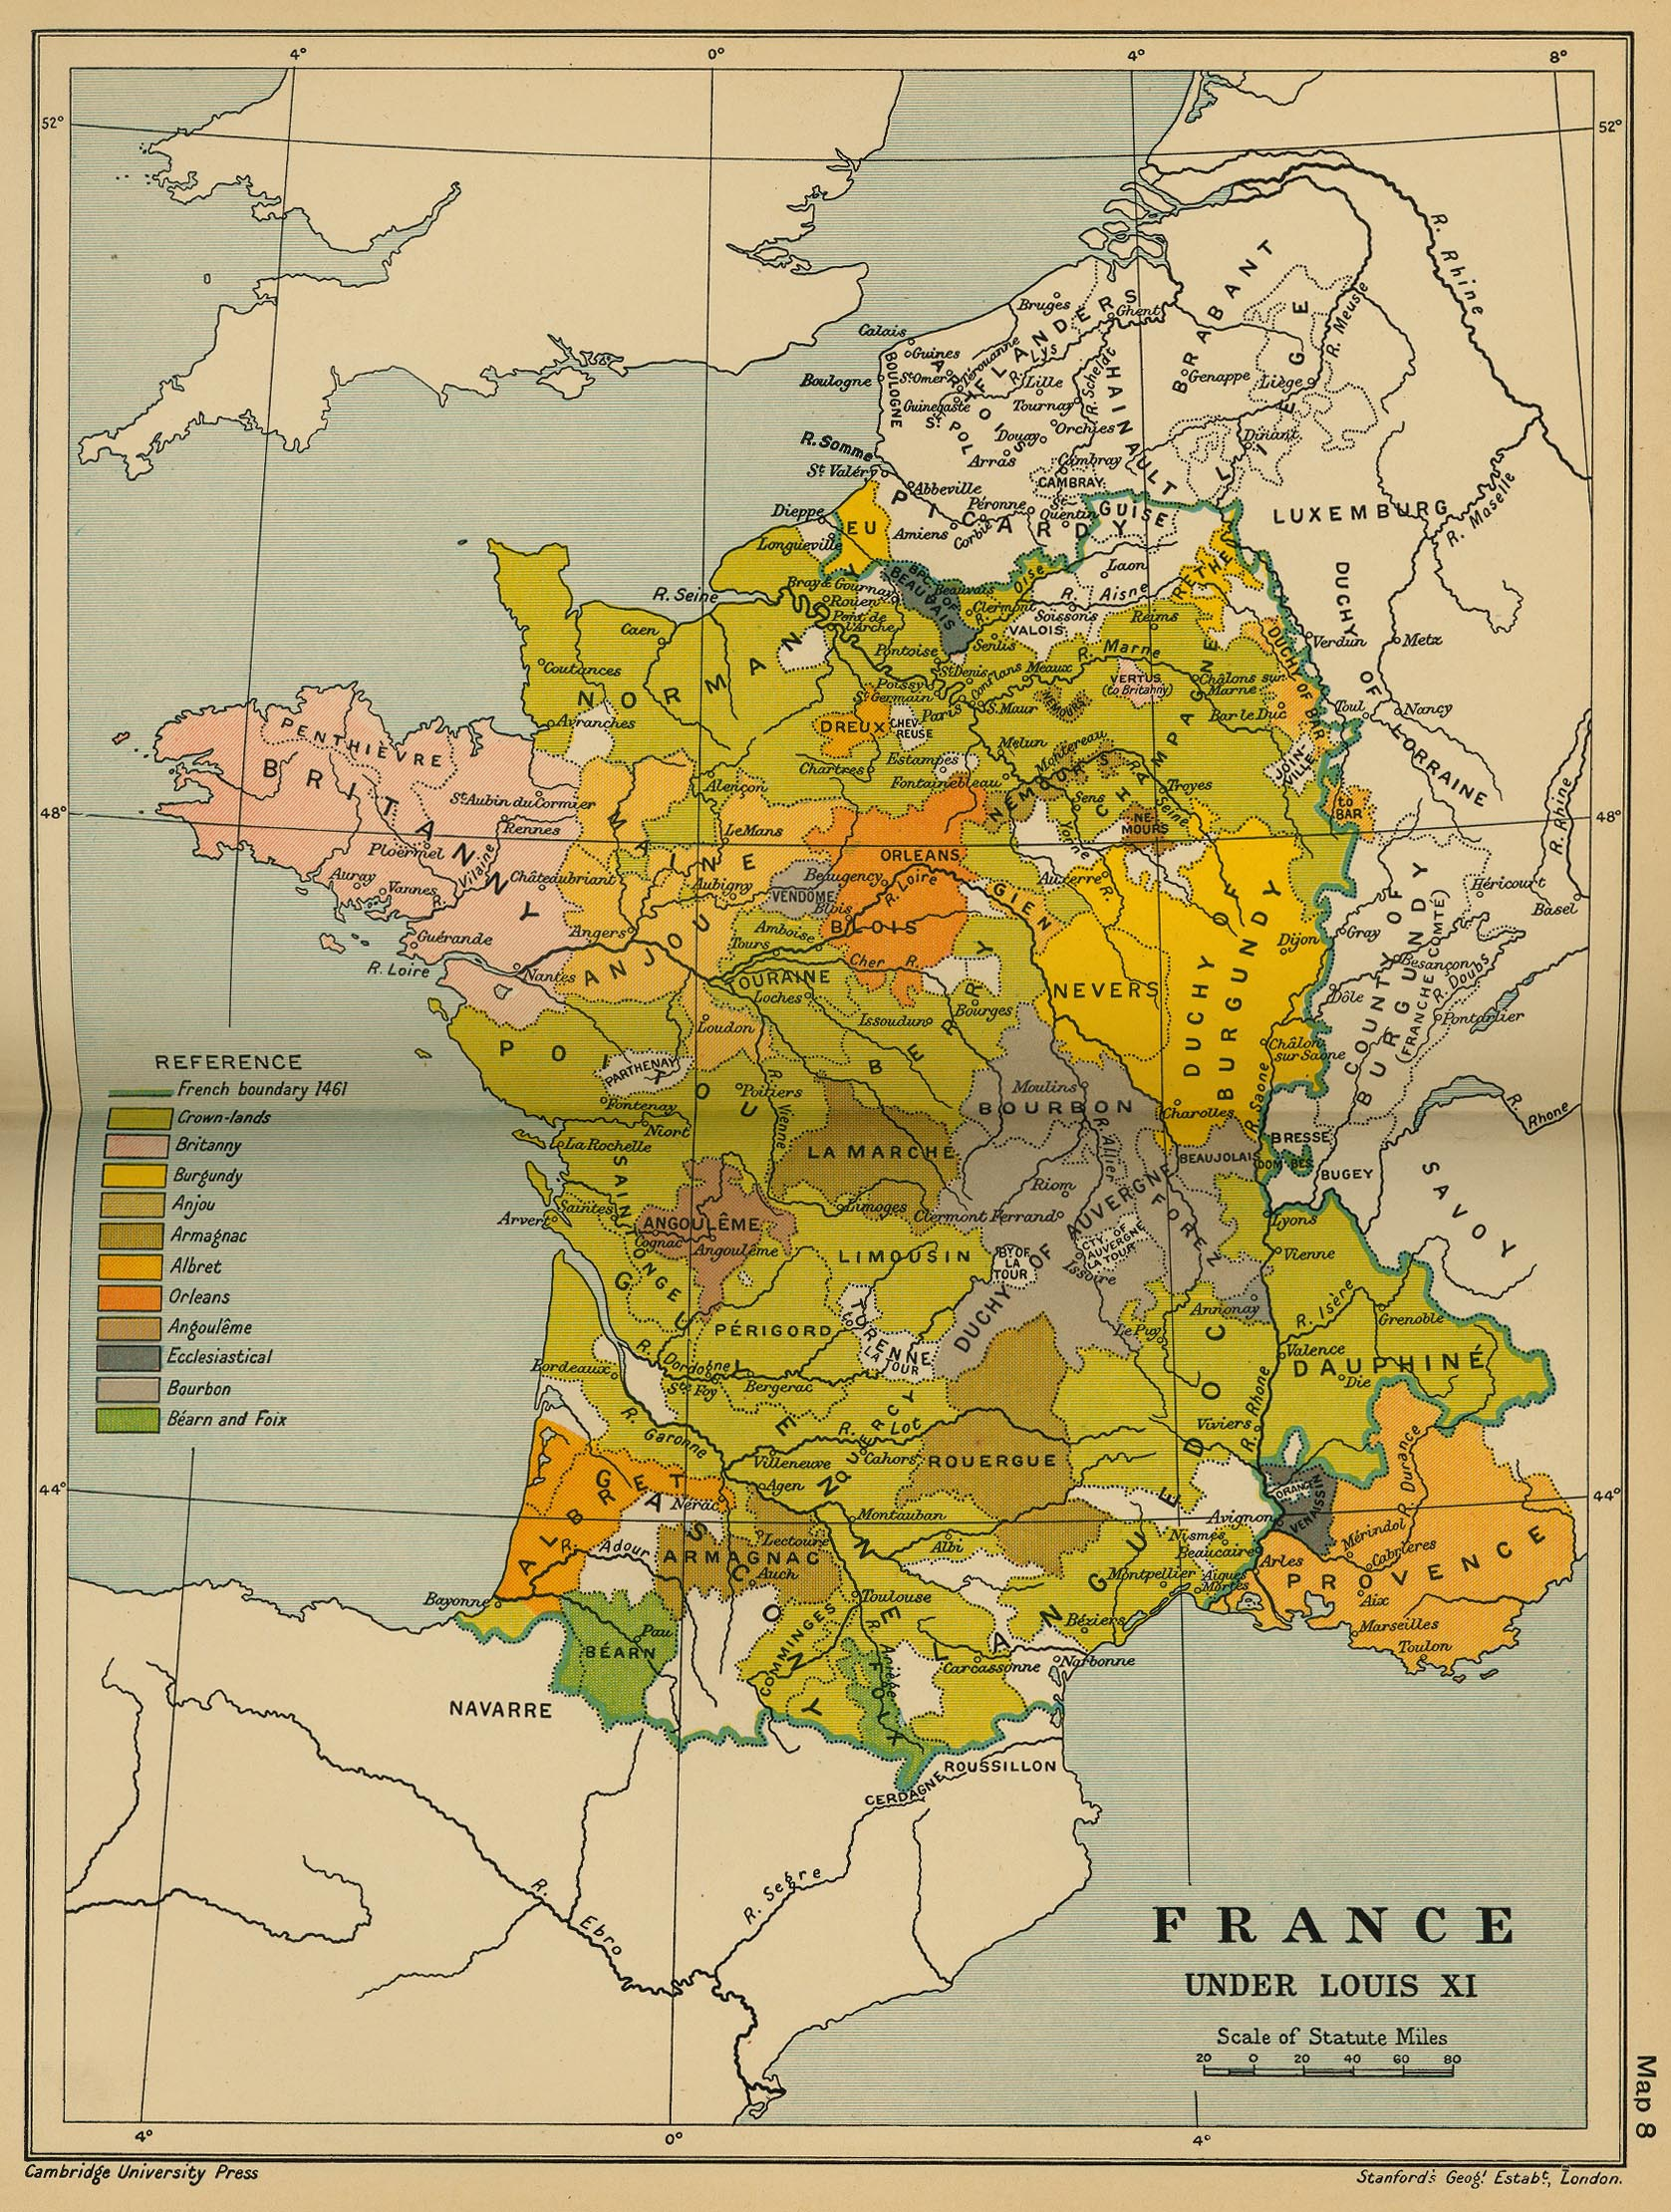 Map of France Under Louis XI, 1461 - 1483